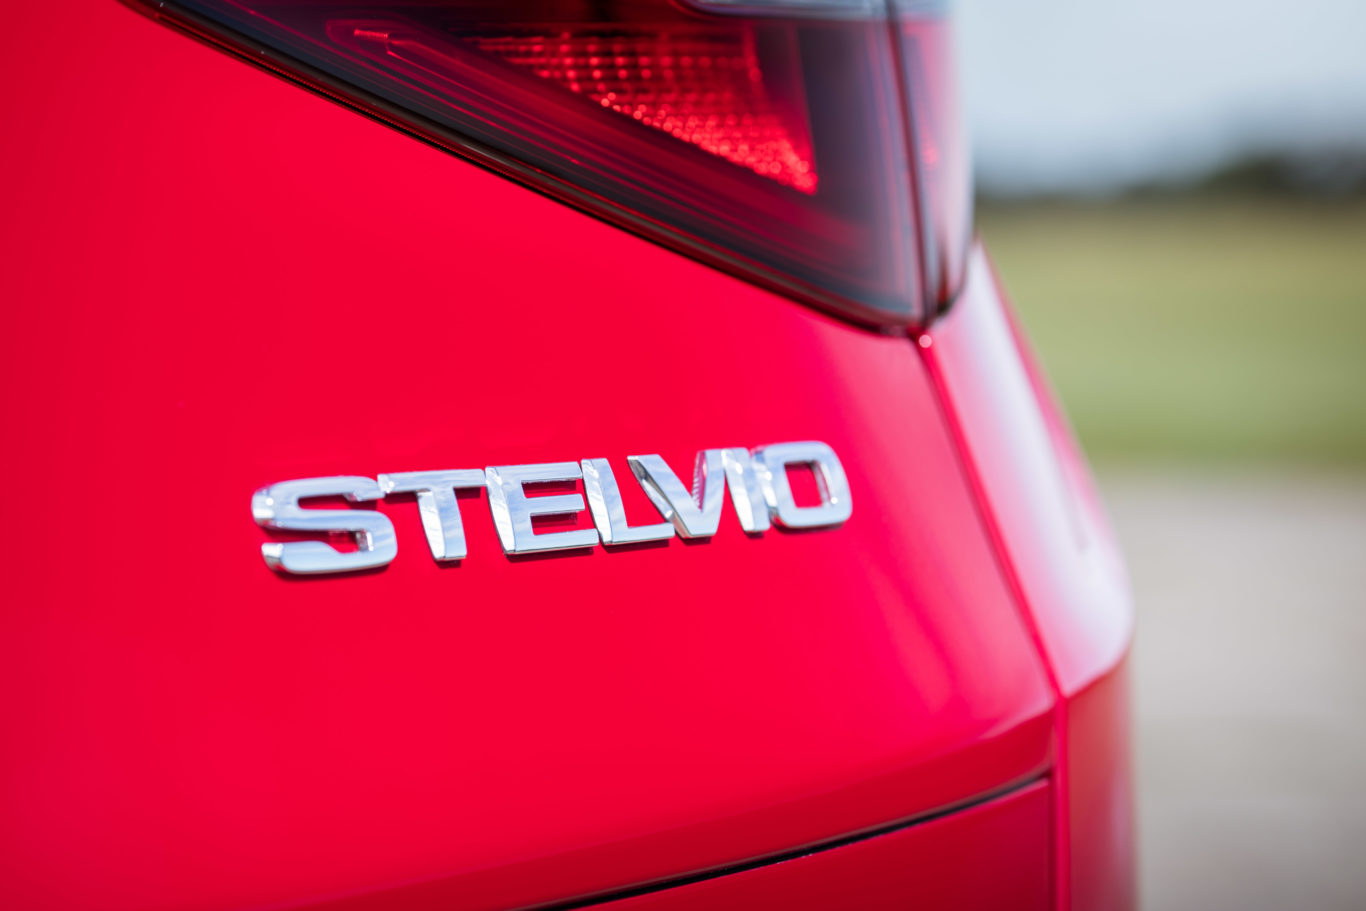 Chrome badging helps to give the Stelvio a premium look